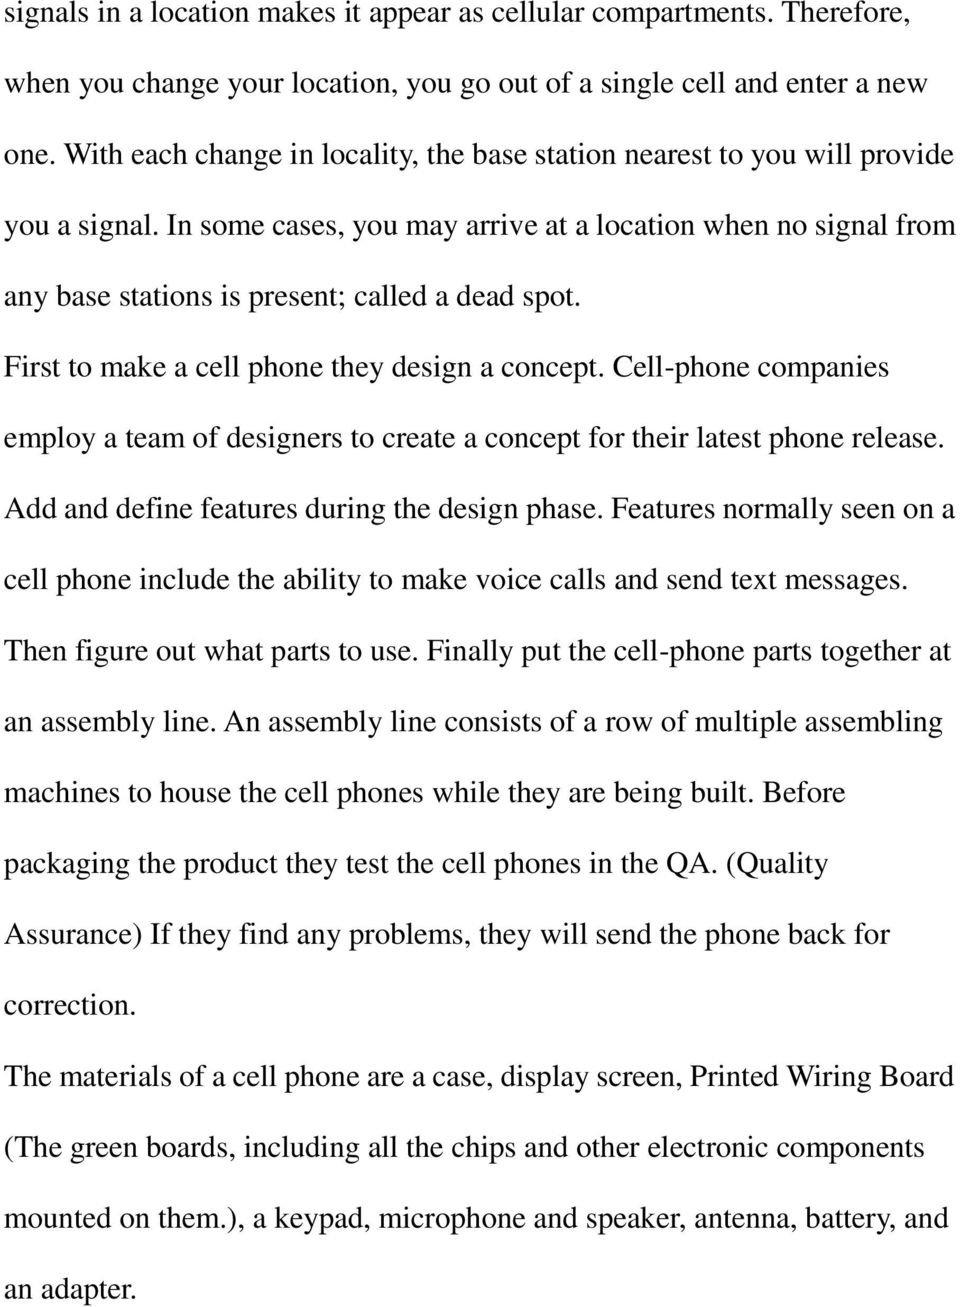 In some cases, you may arrive at a location when no signal from any base stations is present; called a dead spot. First to make a cell phone they design a concept.